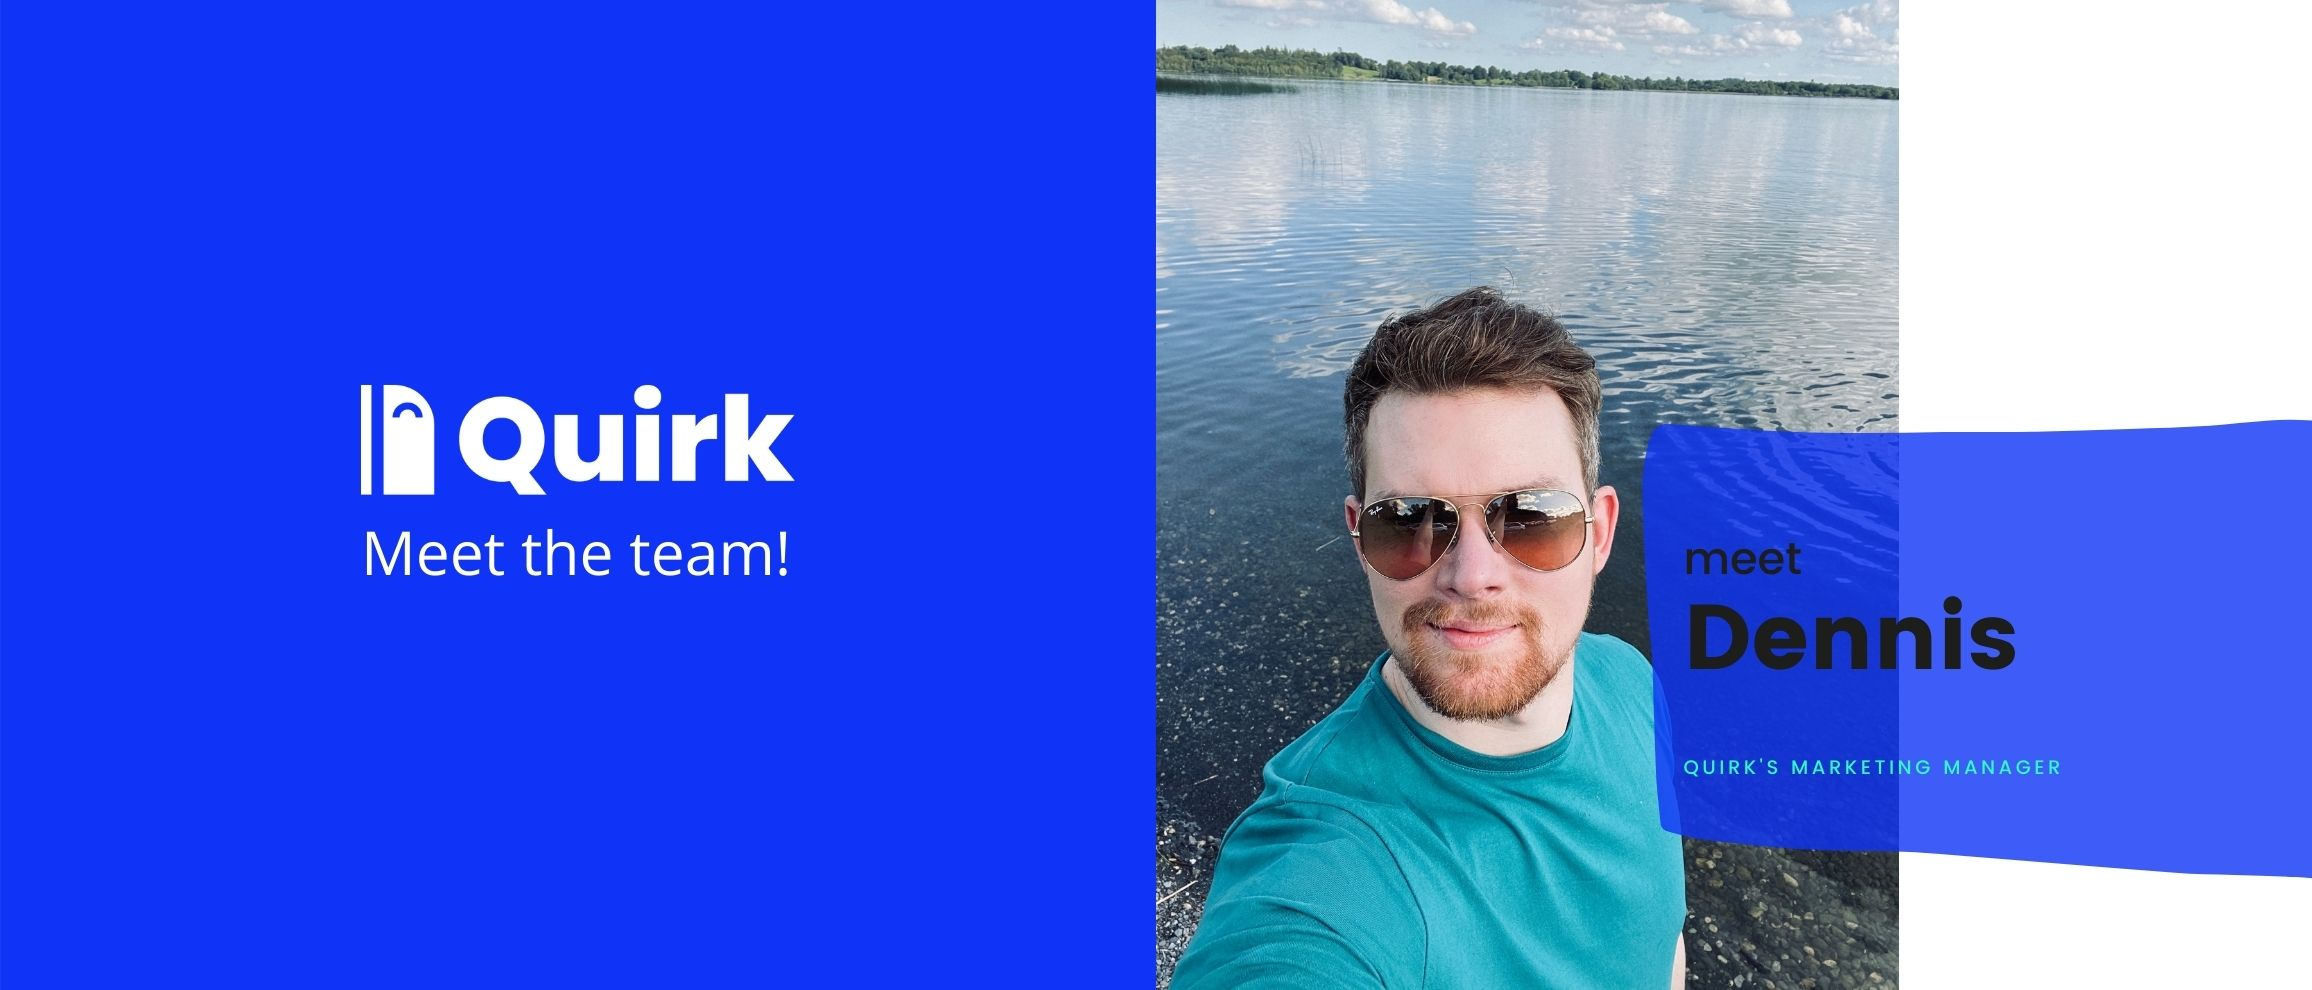 Meet Dennis, Marketing Manager at Quirk